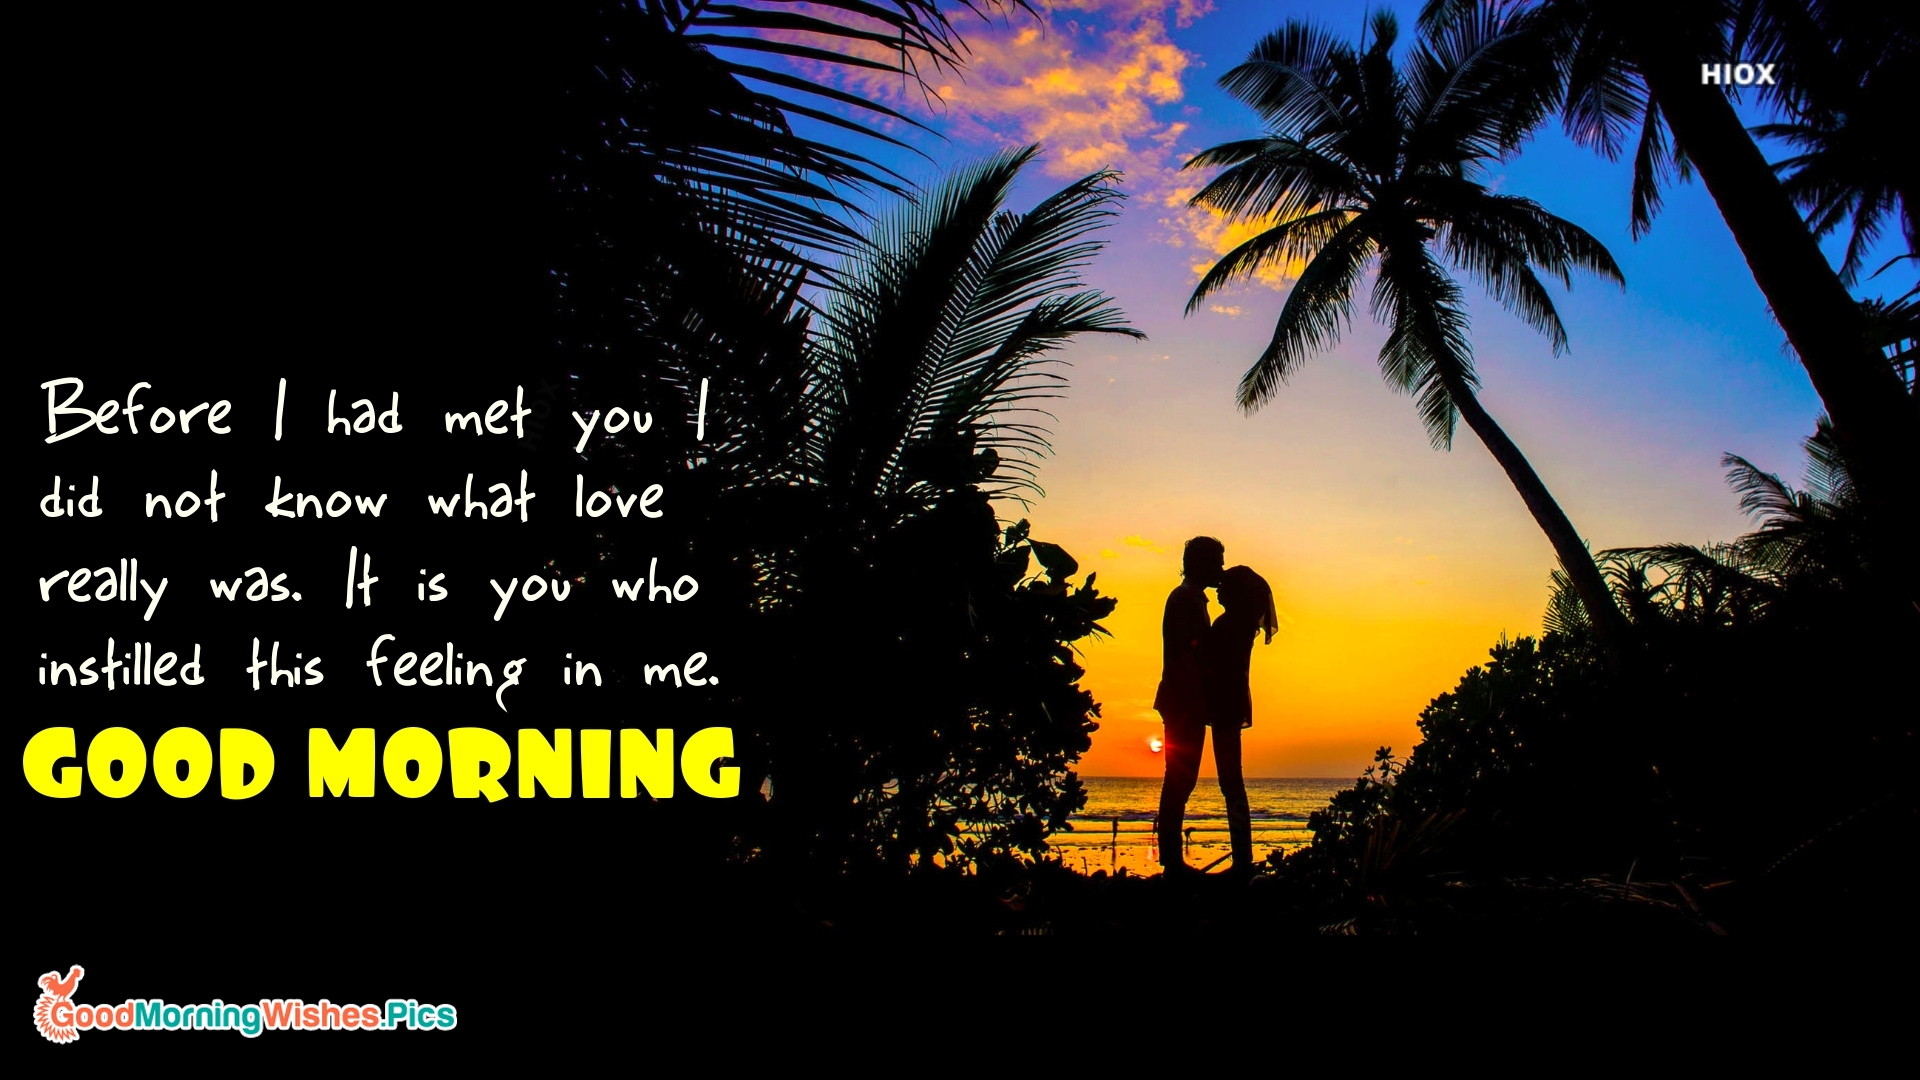 Good Morning Quotes To Make Her Day